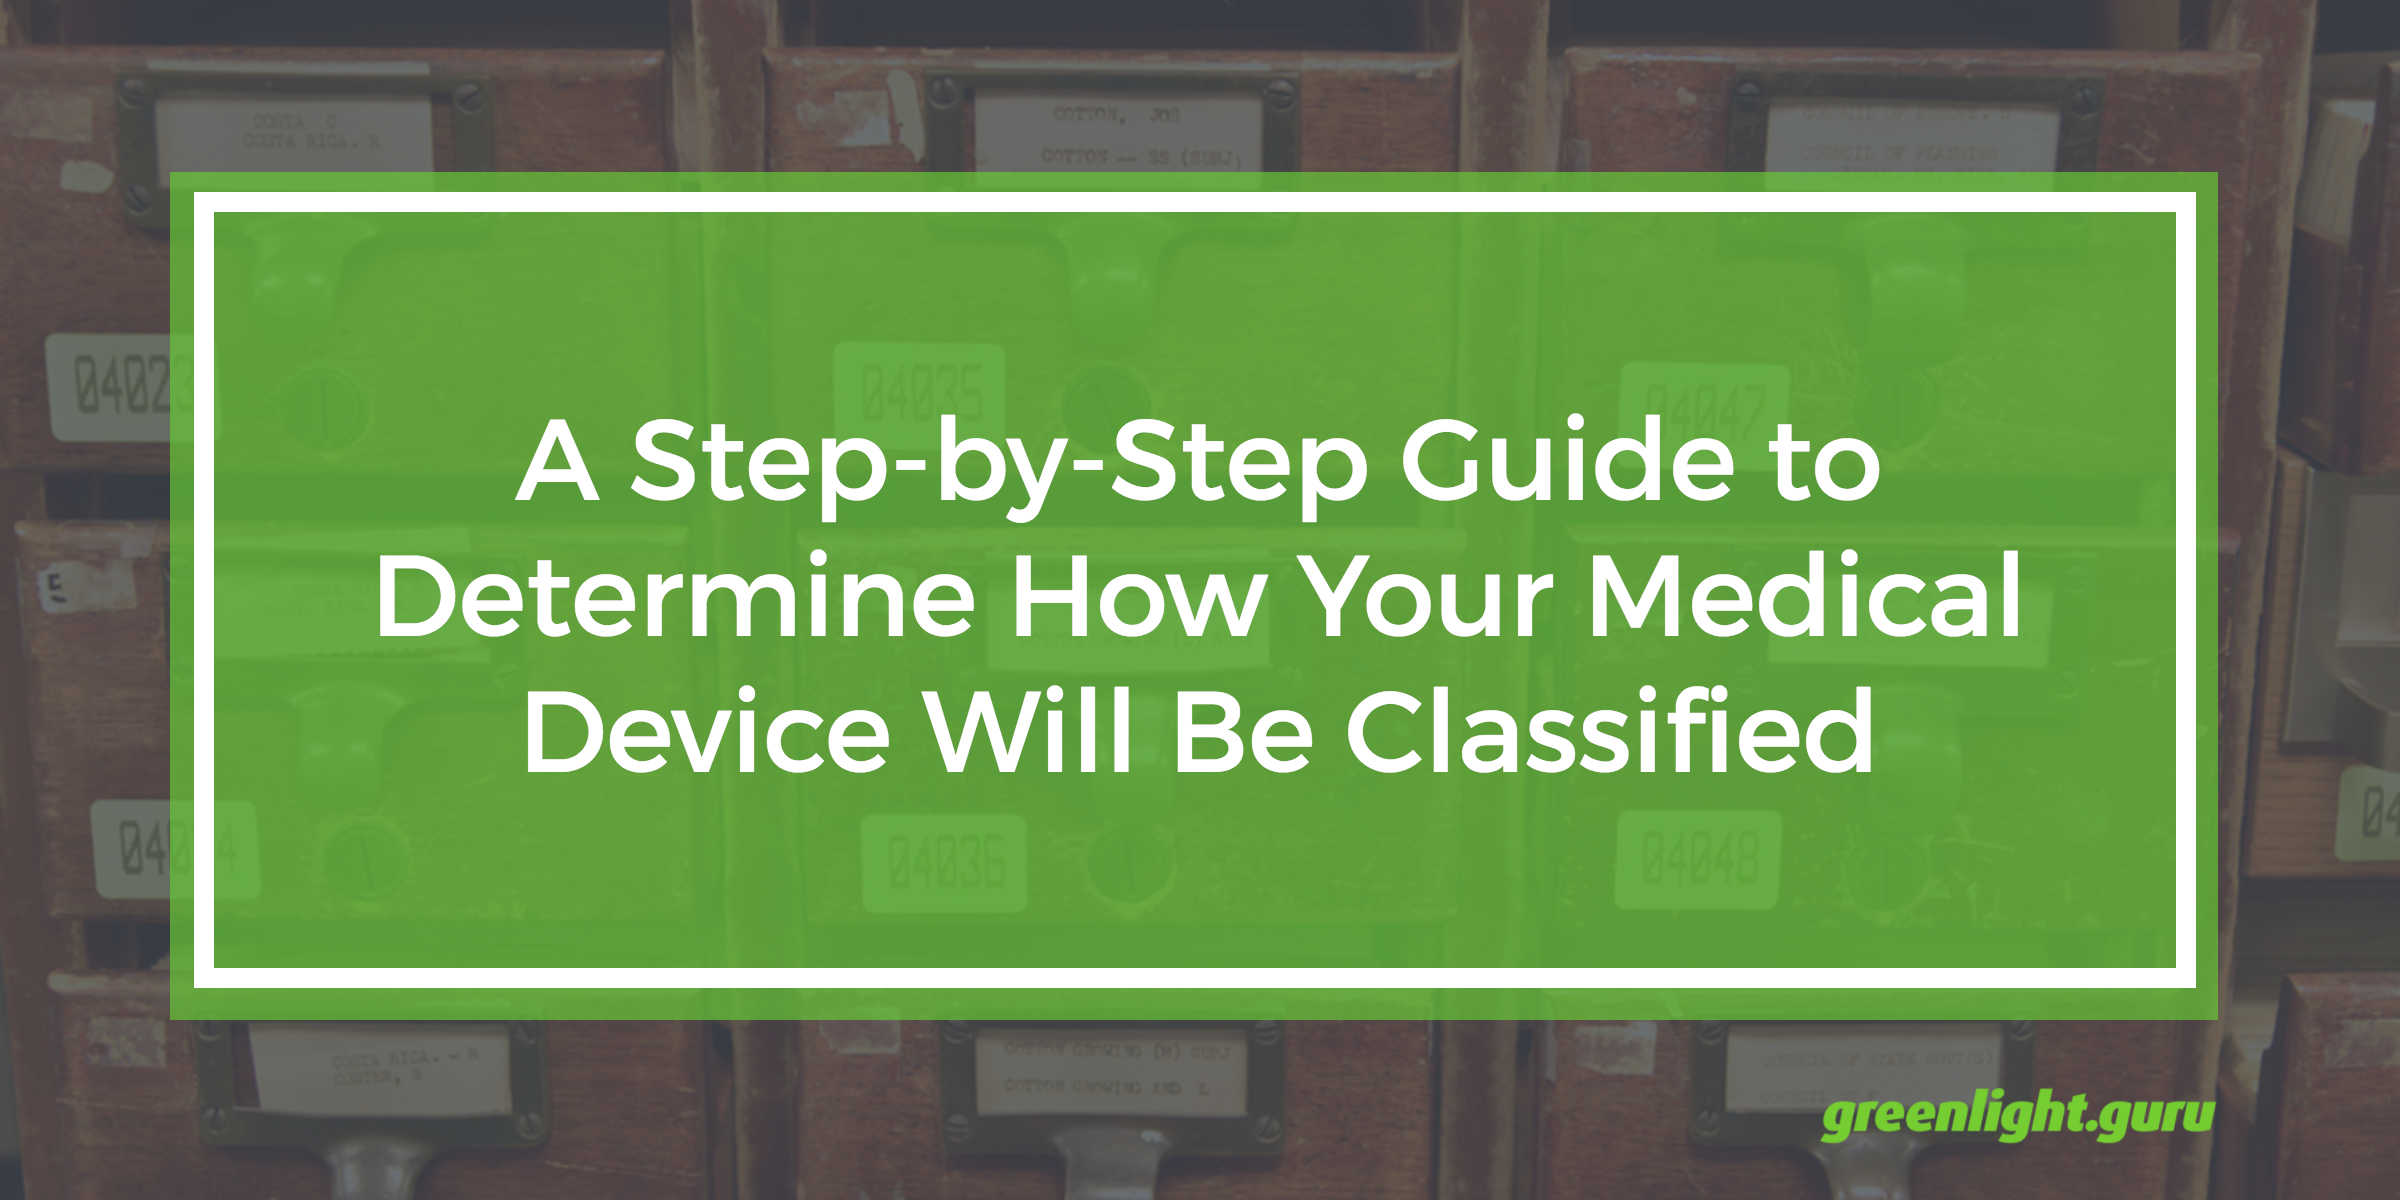 A Step-by-Step Guide to Determine How Your Medical Device Will Be Classified - Featured Image